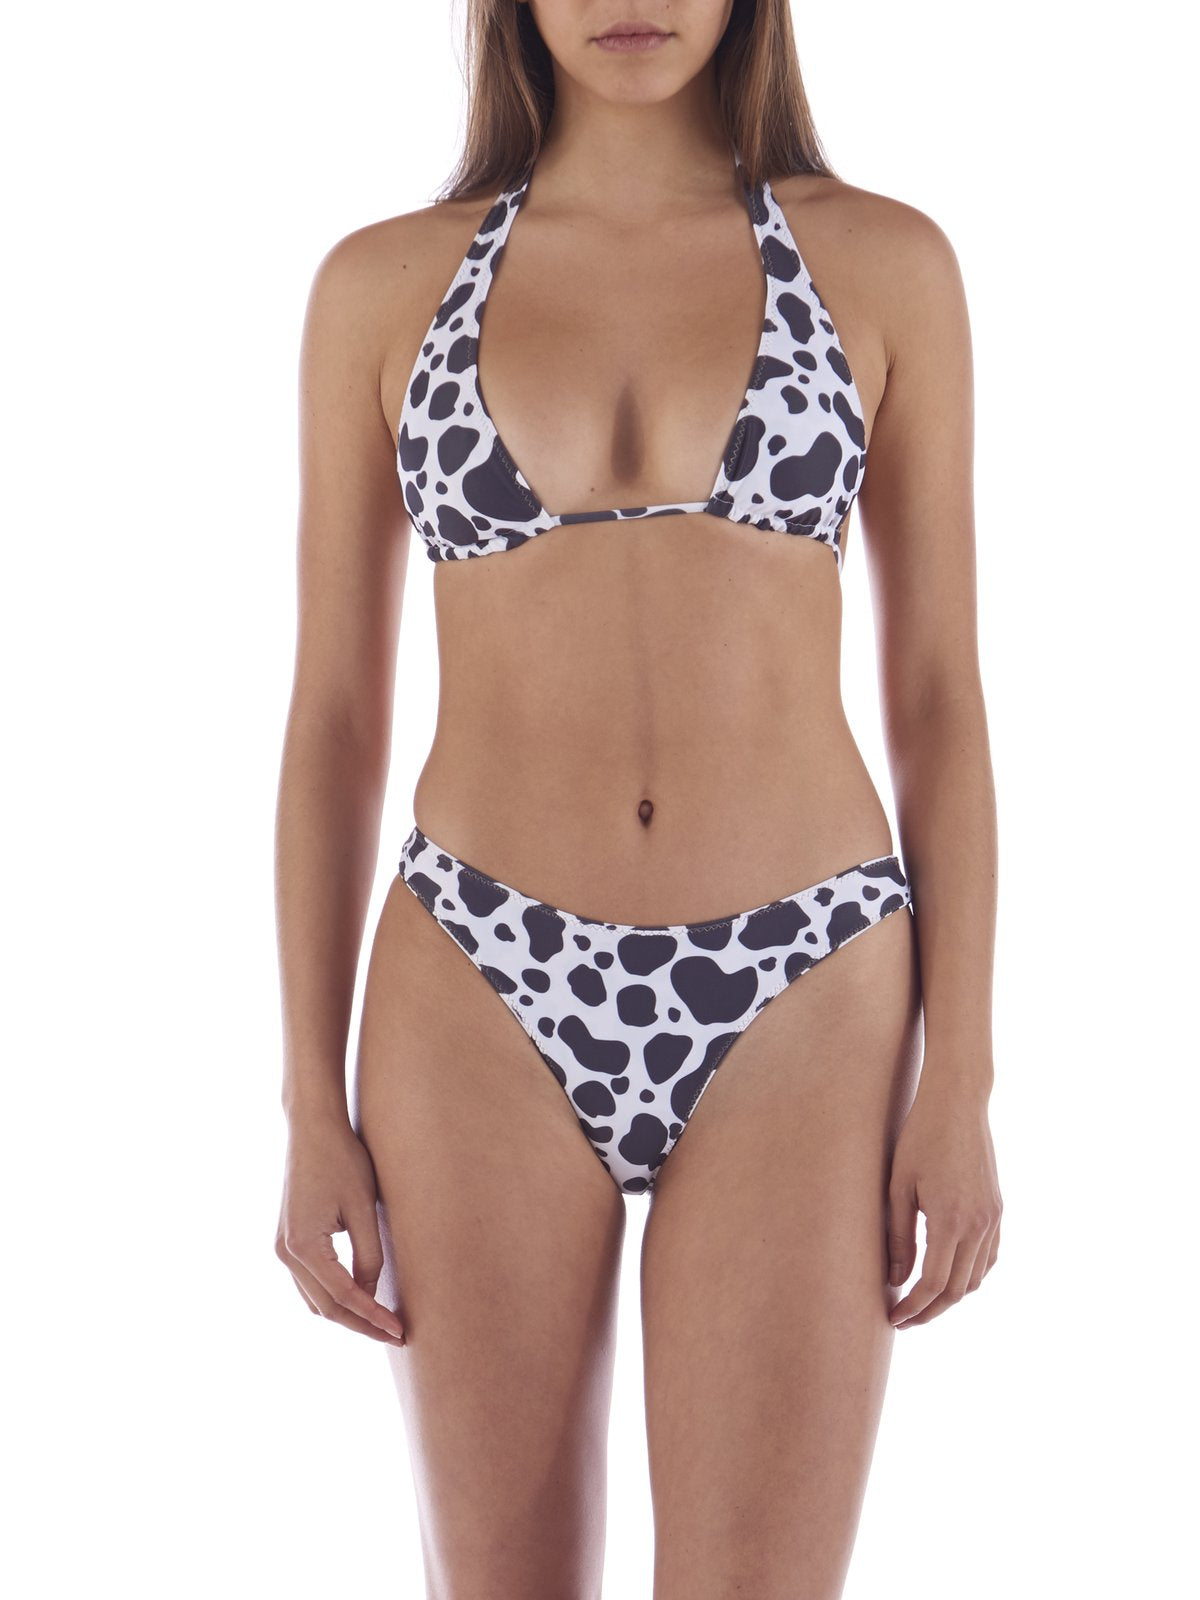 Ama Lama Top (Cow Print)